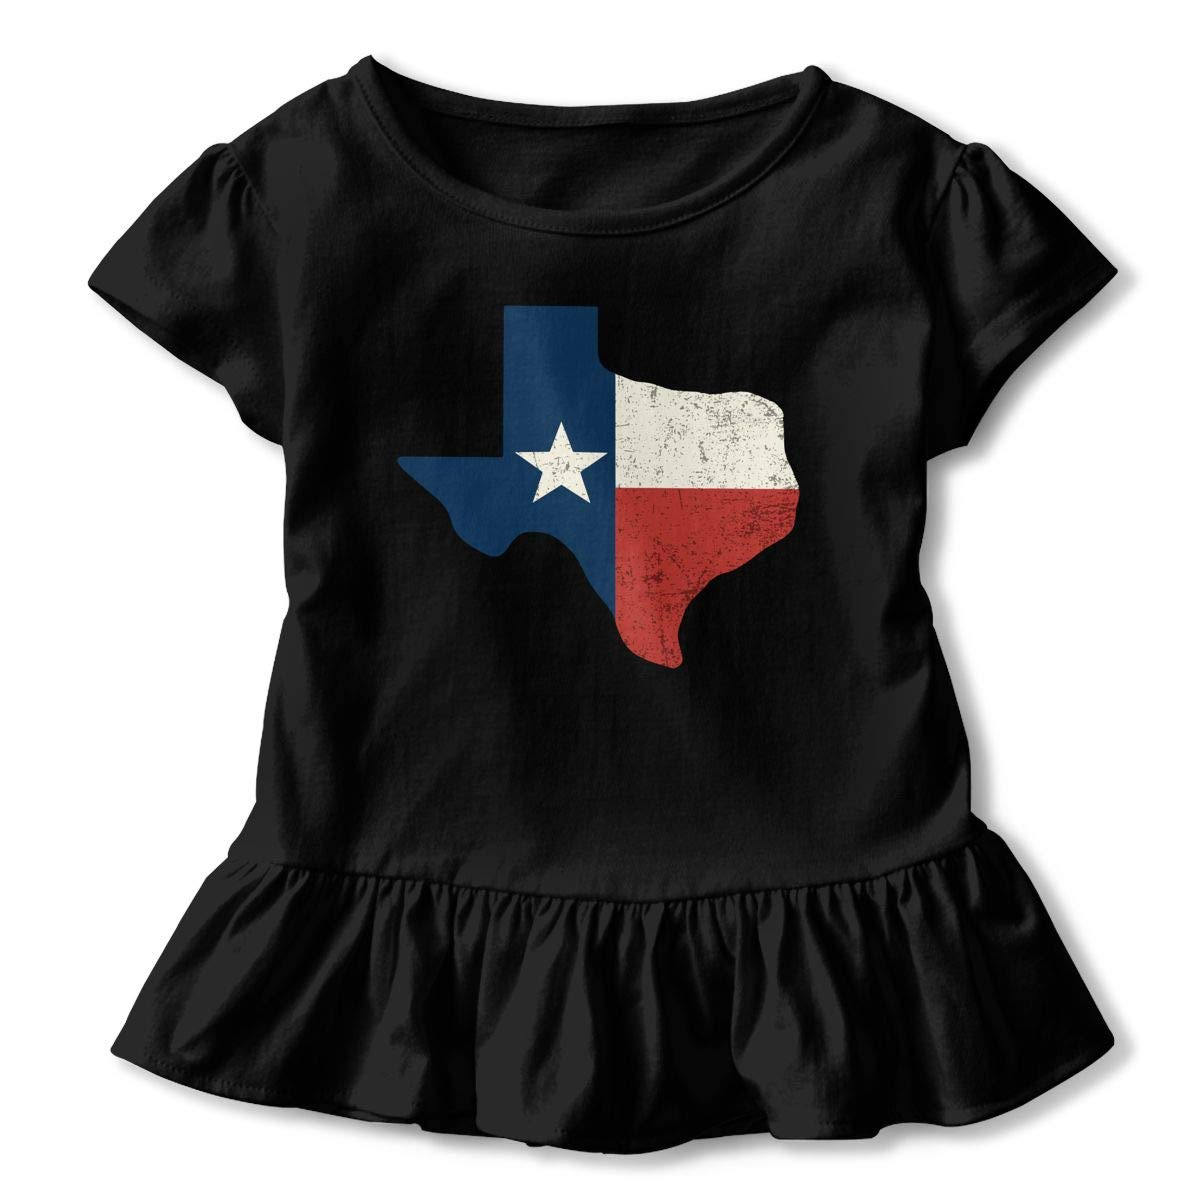 Vintage Texas Flag Toddler//Infant Girls Short Sleeve T-Shirts Ruffles Shirt Tee for 2-6T